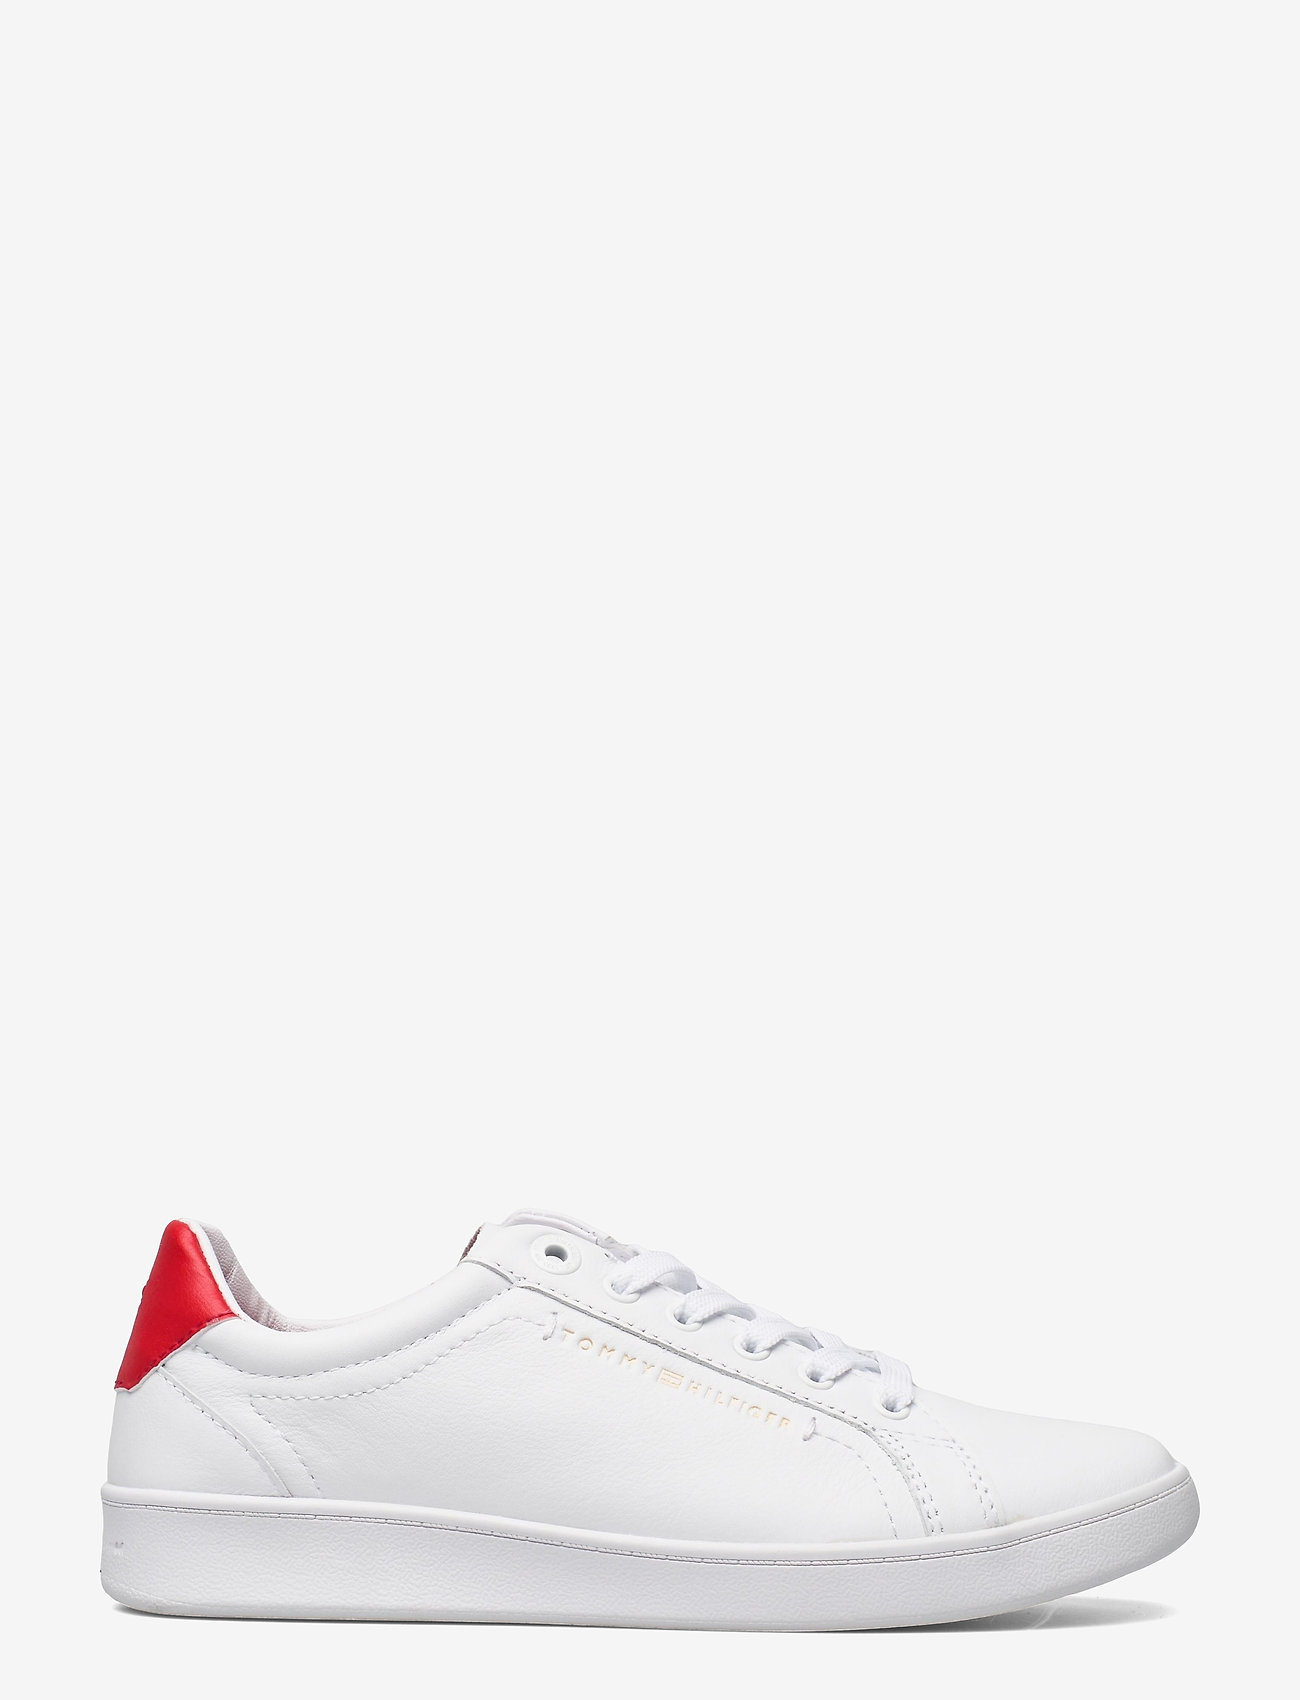 Tommy Hilfiger - PREMIUM COURT SNEAKER - low top sneakers - fireworks - 1